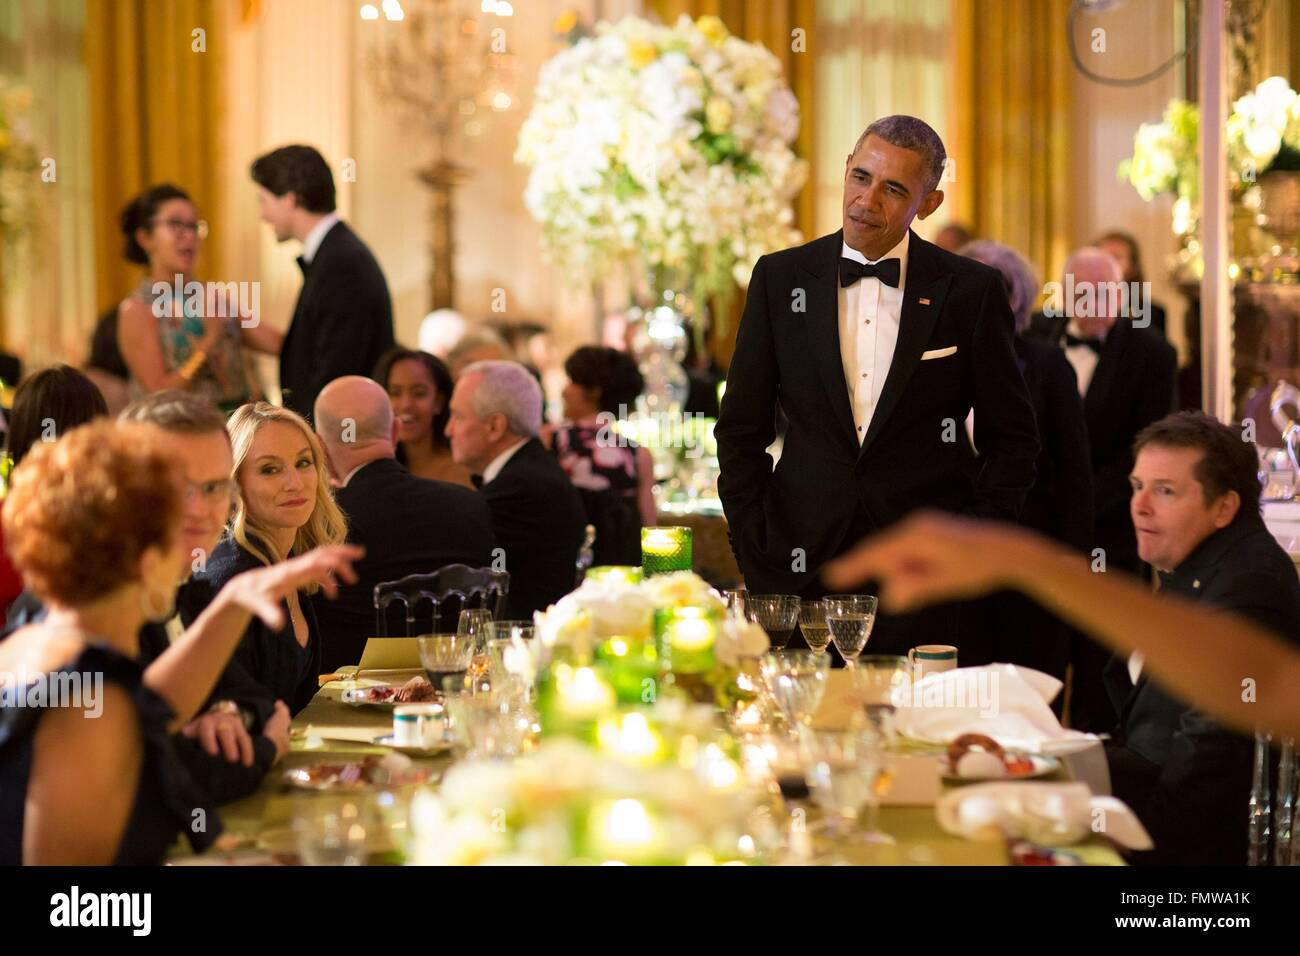 U.S. President Barack Obama speaks with dinner guests during the State Dinner for Canadian Prime Minister Justin - Stock Image